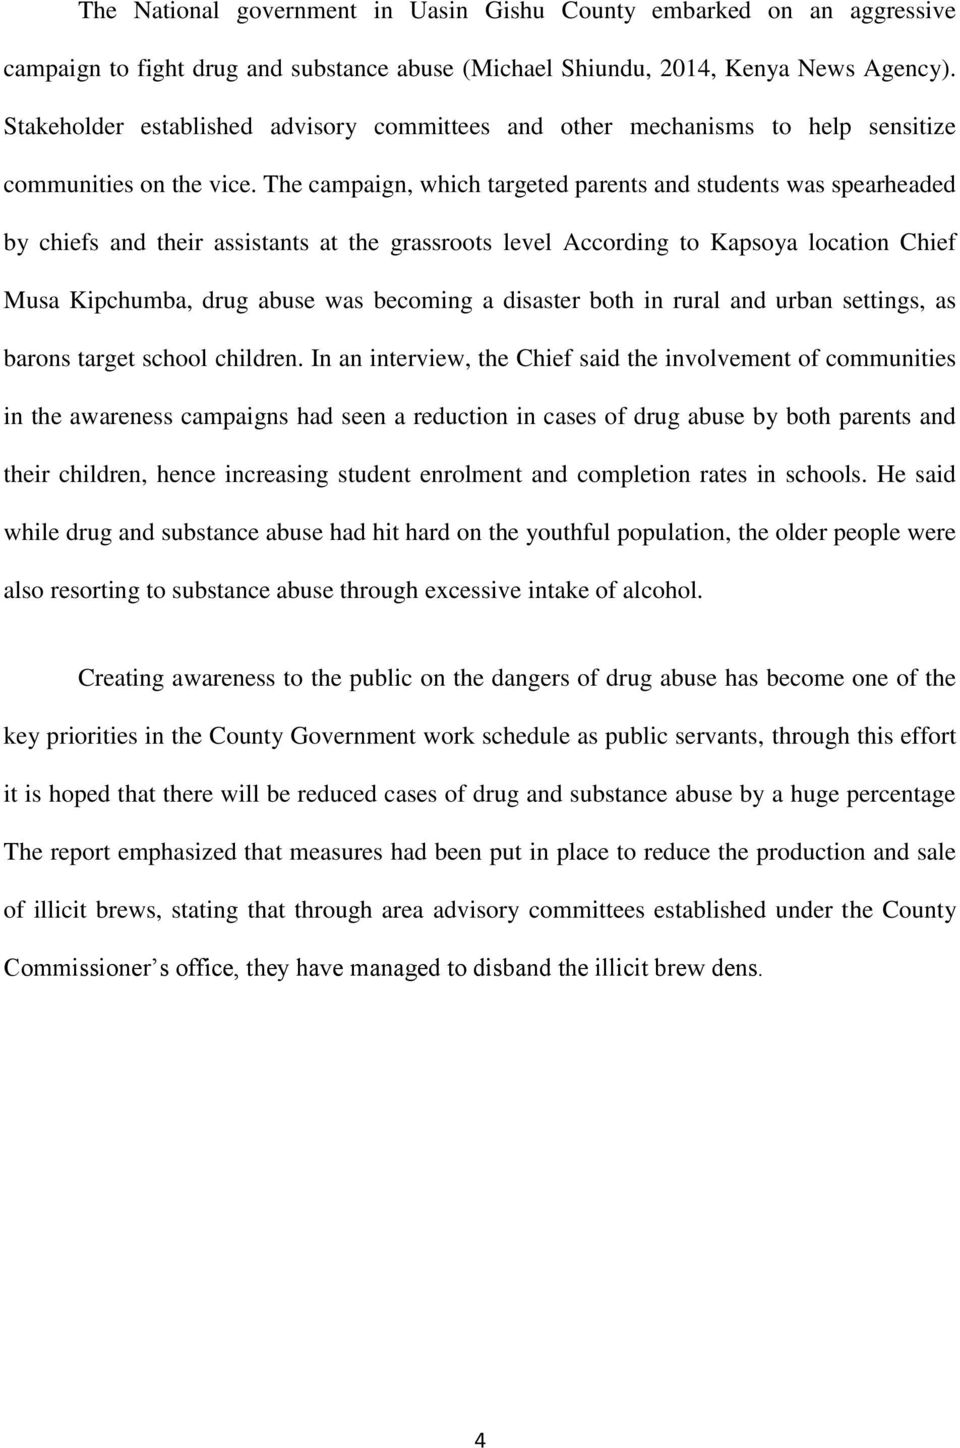 thesis statement for drug abuse and addiction 91 121 113 106 thesis statement for drug abuse and addiction